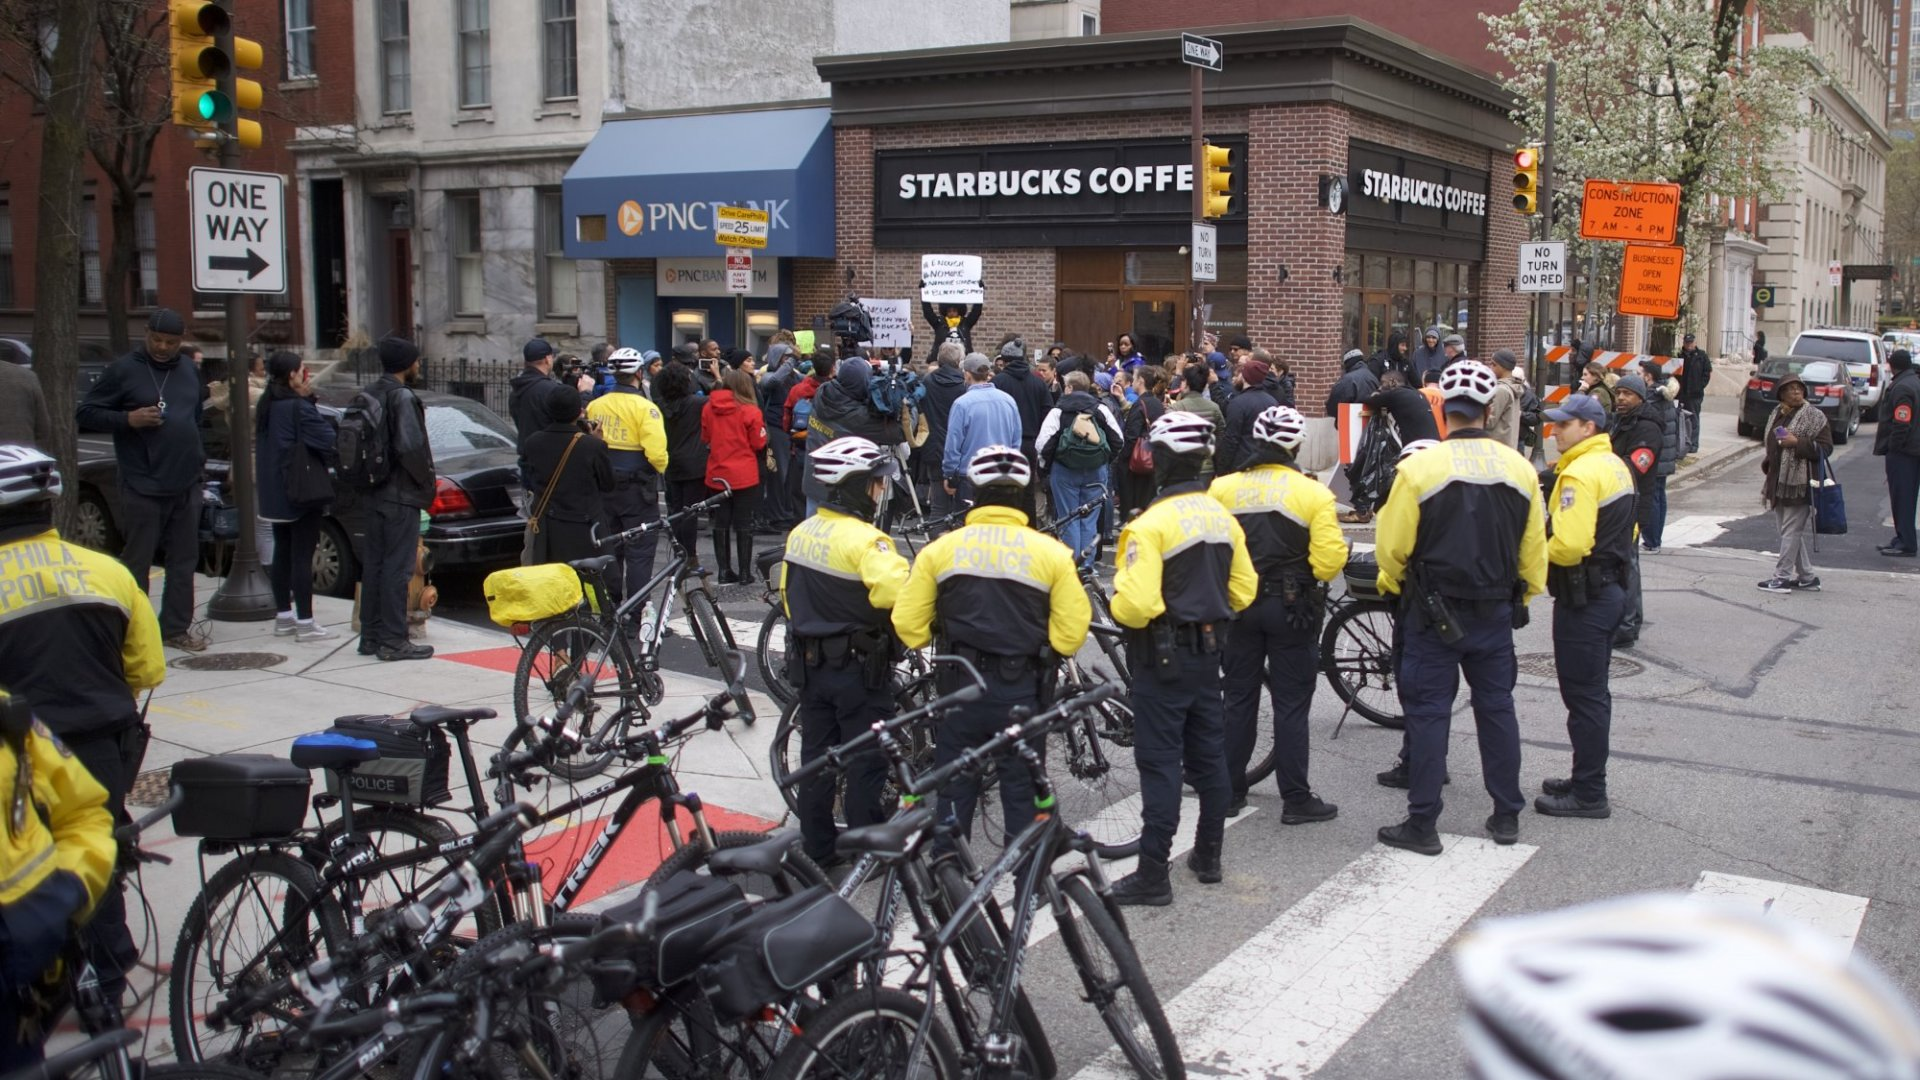 Police monitor activity as protestors demonstrate outside a Center City Starbucks on April 15, 2018, in Philadelphia. Police arrested two black men who were waiting inside the Center City Starbucks, which prompted an apology from the company's CEO.